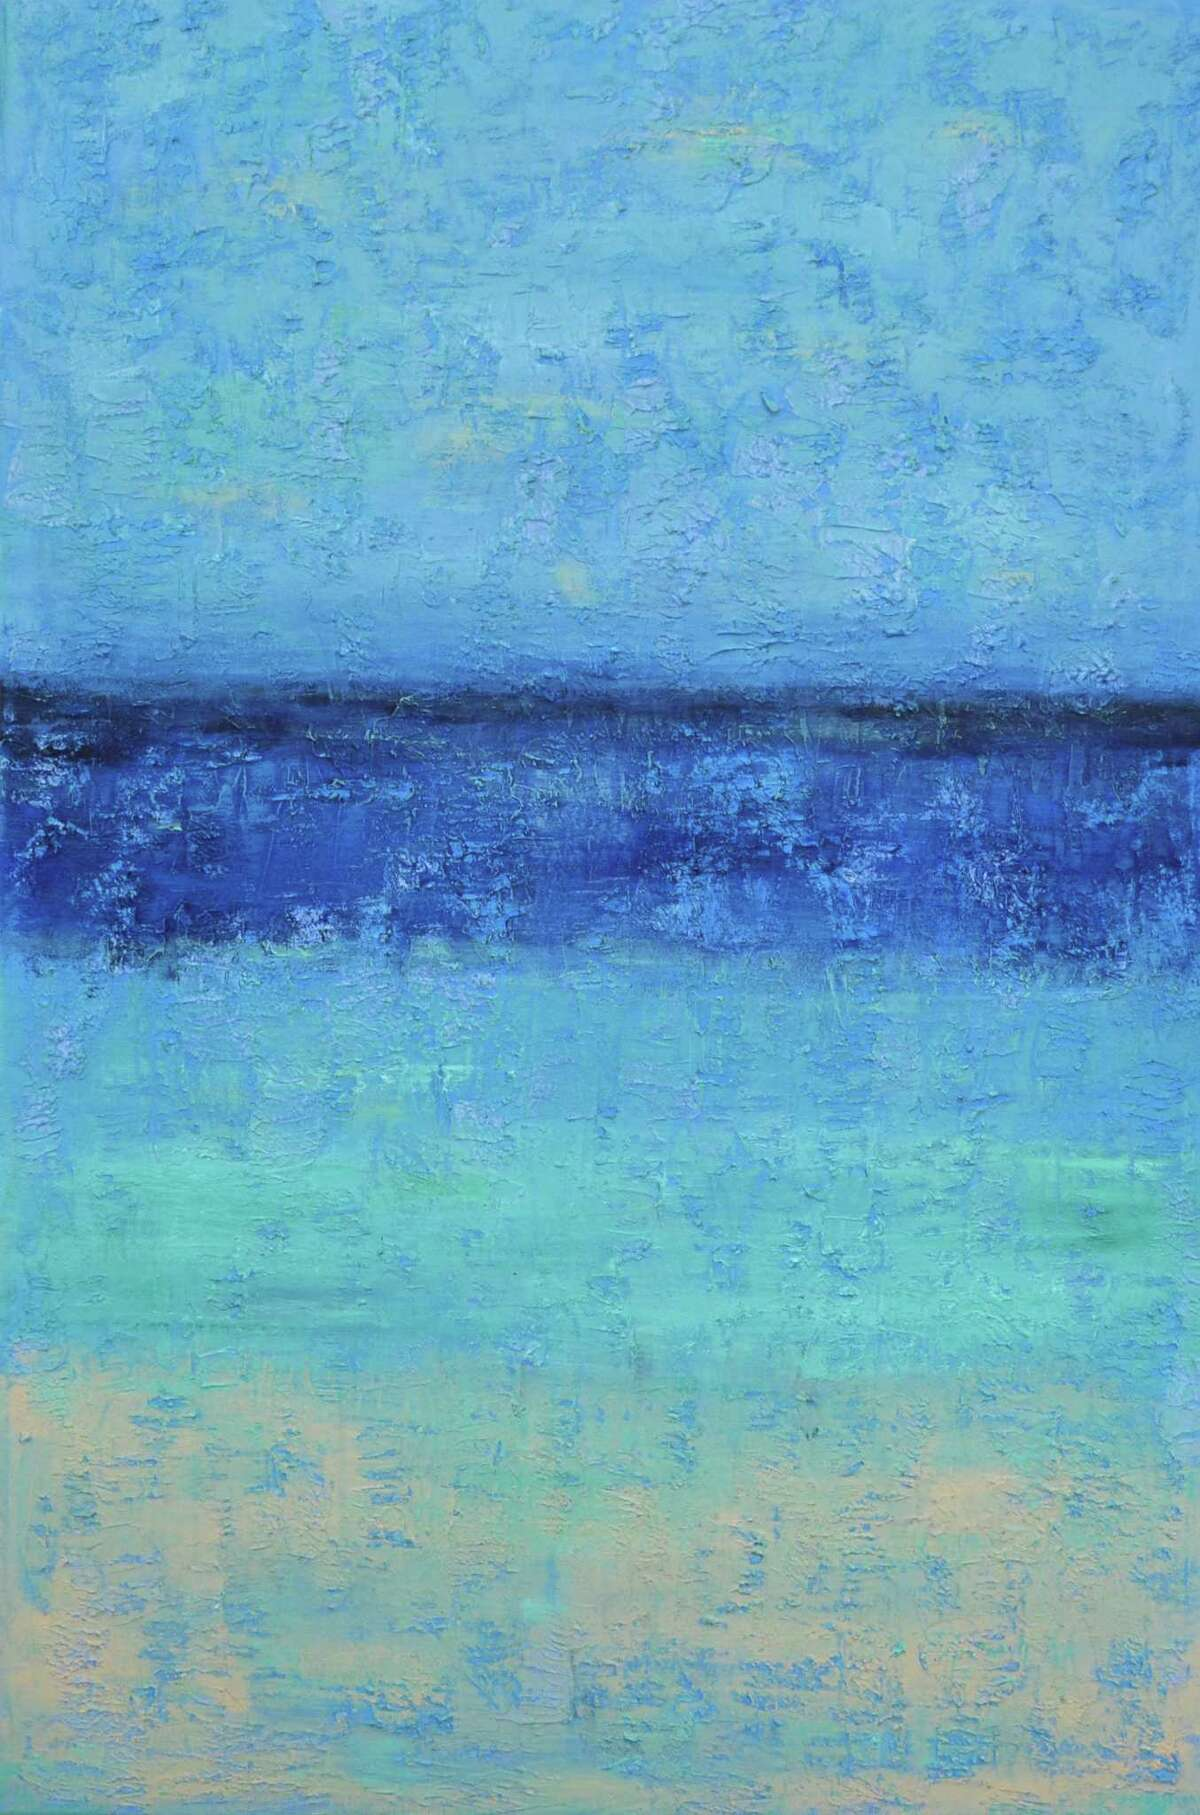 """Maria C. Friscia's """"Summer Breeze"""" will be featured in the Loft Artists Association exhibit at the Wilton Library Feb. 1-22."""